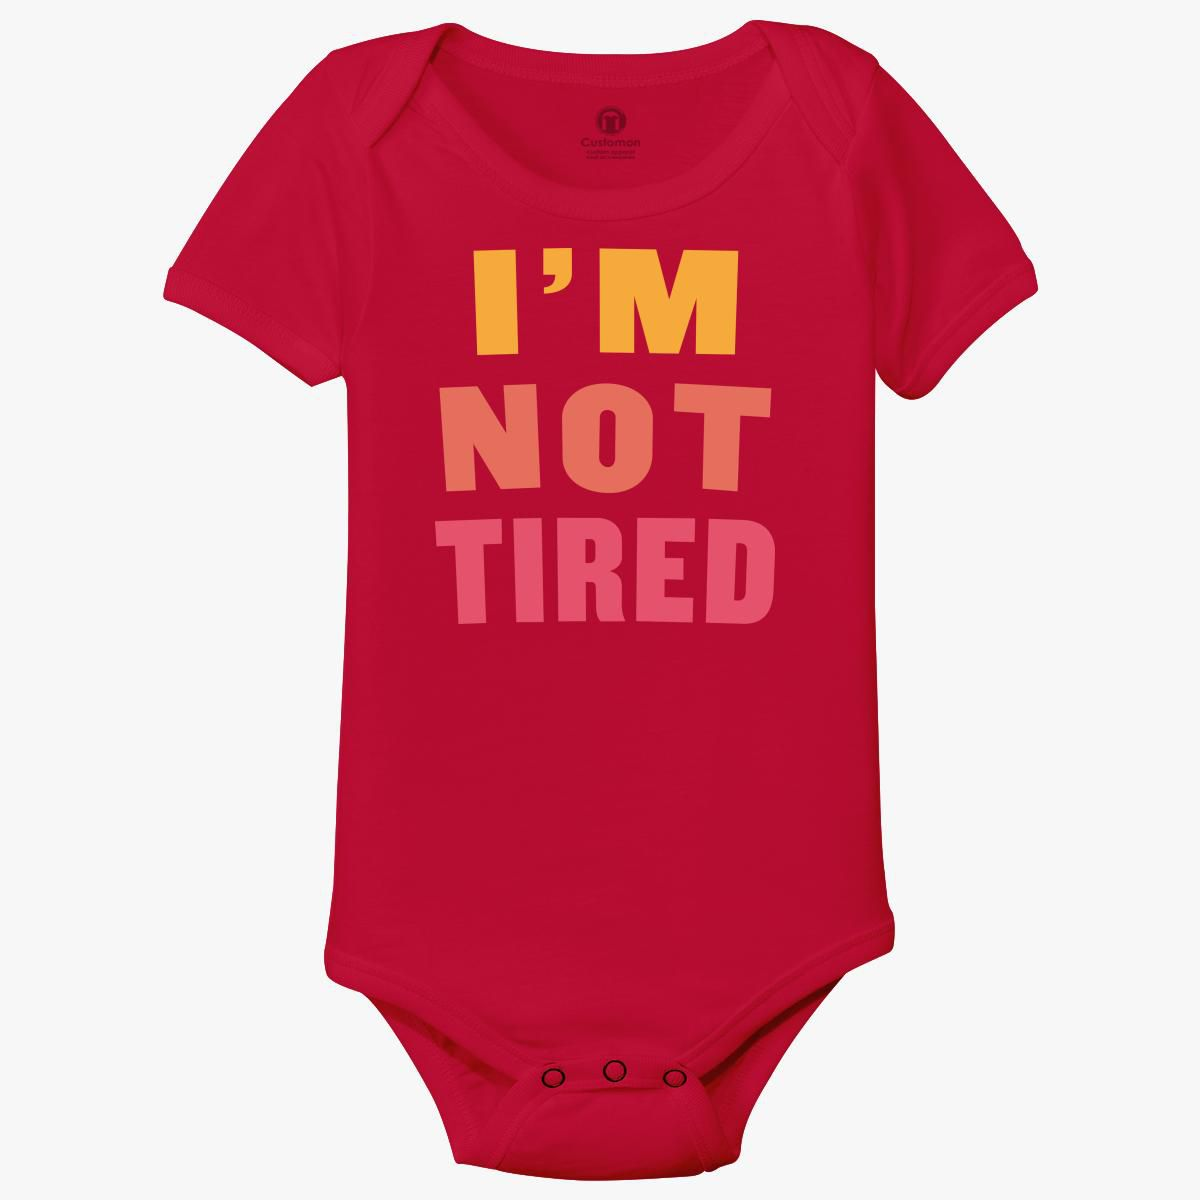 I'm Not Tired Baby Onesies